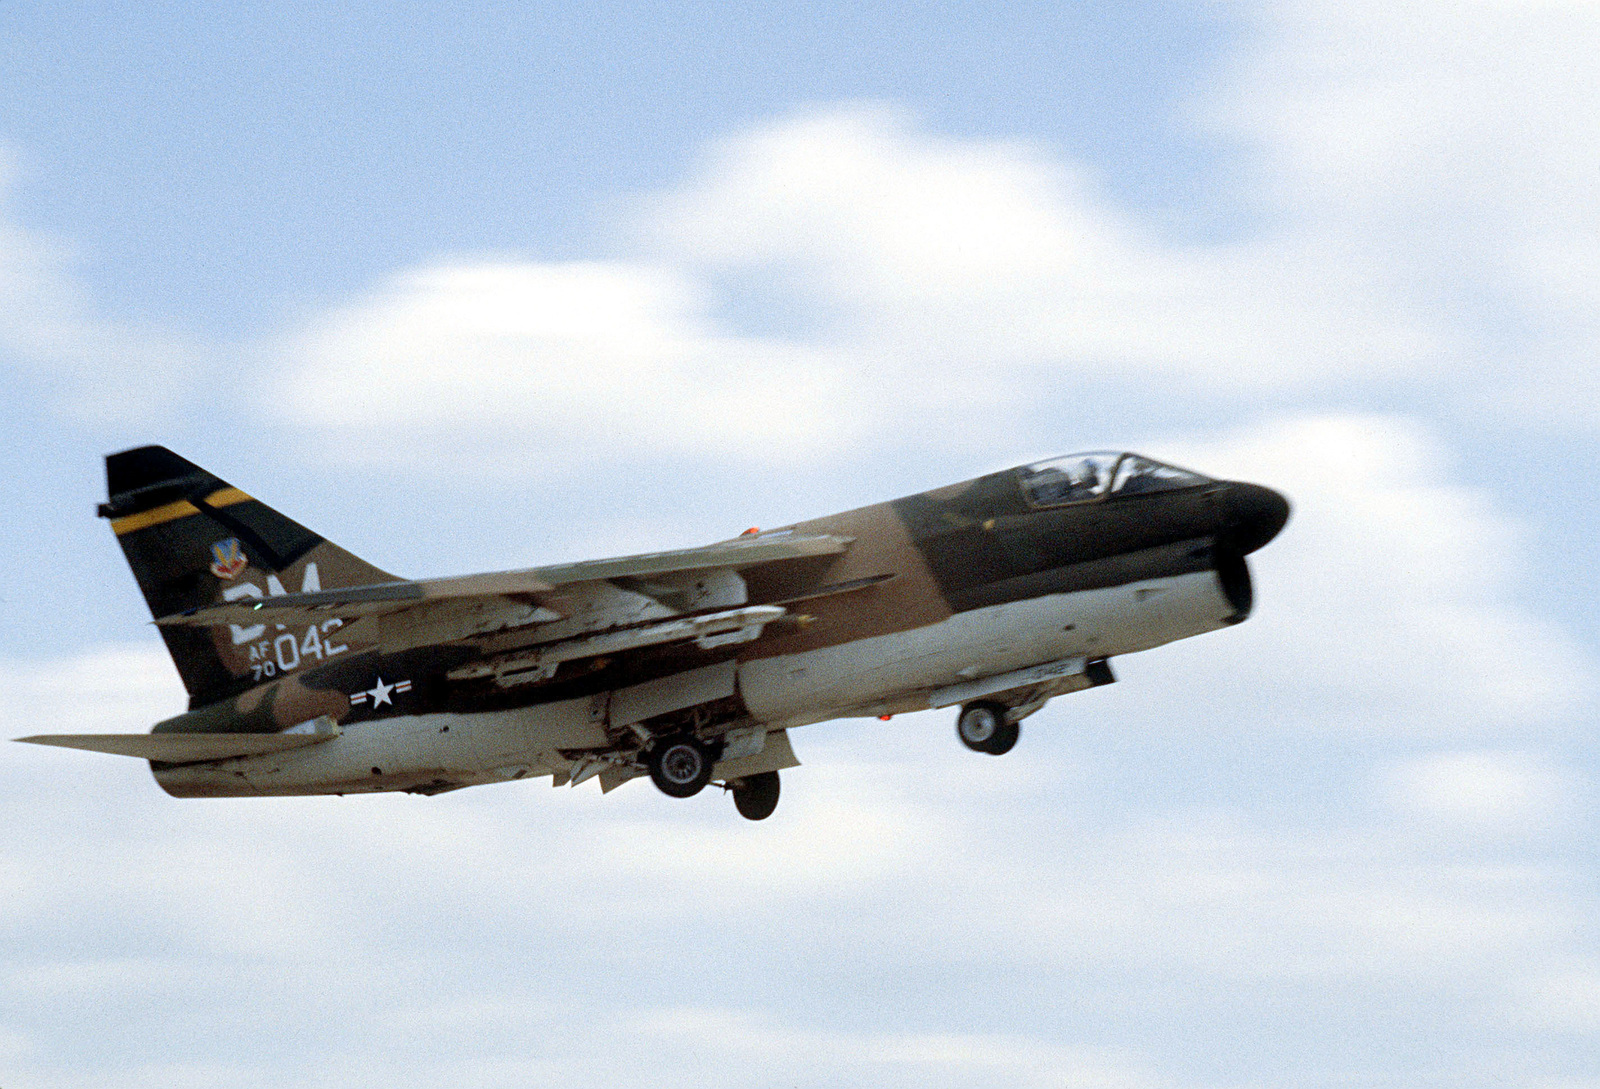 An A-7D Corsair II aircraft takes off on a flight to Fort Hood, Texas, to participate in a firepower demonstration for President Carter